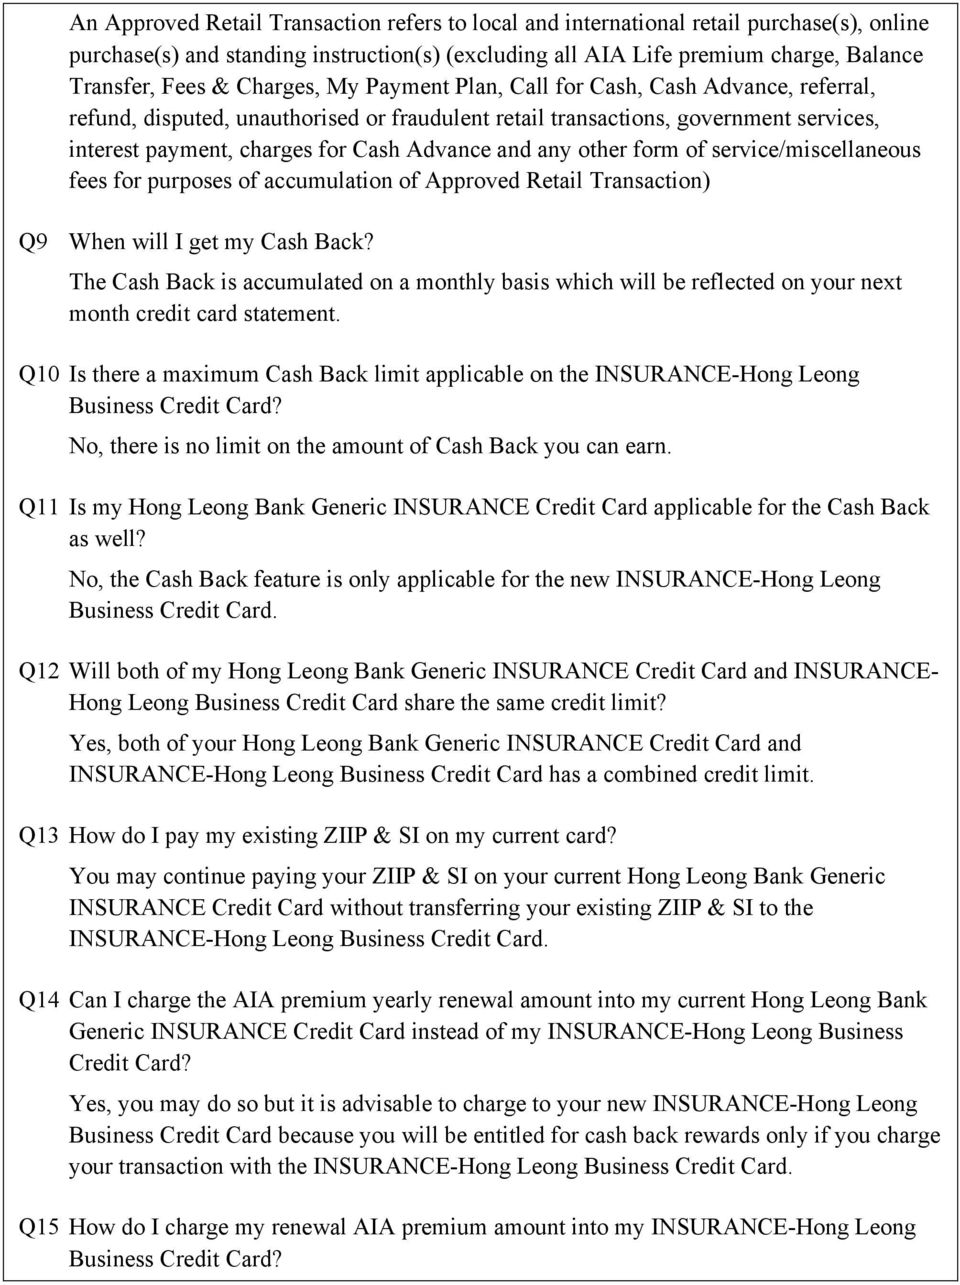 Insurance Hong Leong Business Credit Card Cash Back Features